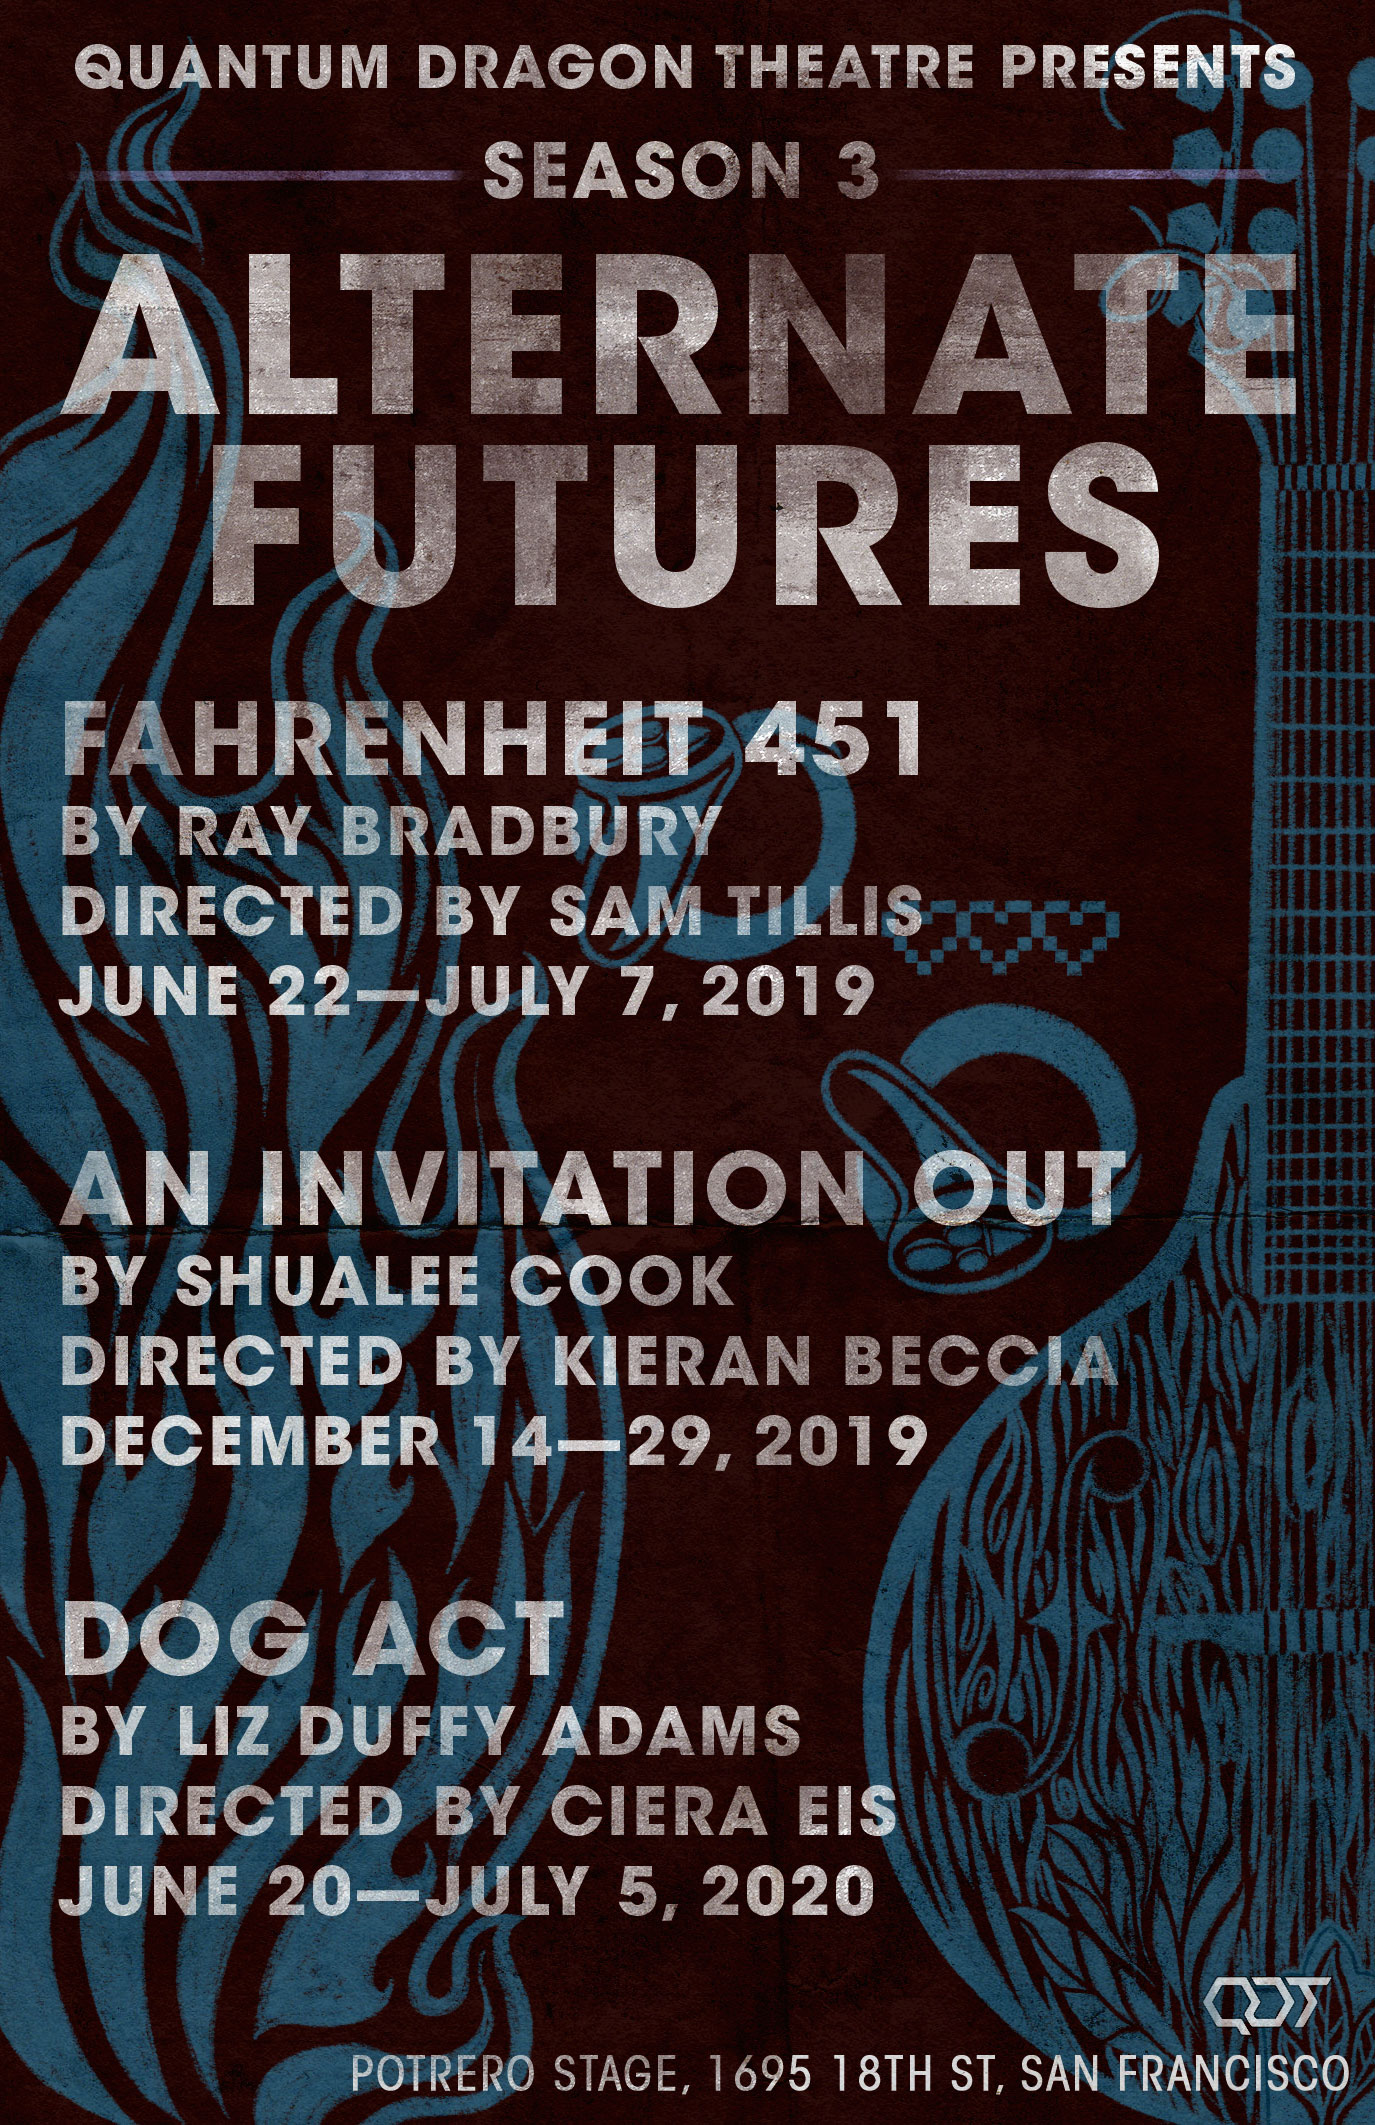 Dog Act - By Liz Duffy AdamsDirected by Ciera EisJUNE 20th—JULY 5th, 2020Potrero Stage1695 18th St, San Francisco100 min, including one intermissionClick here for content notice